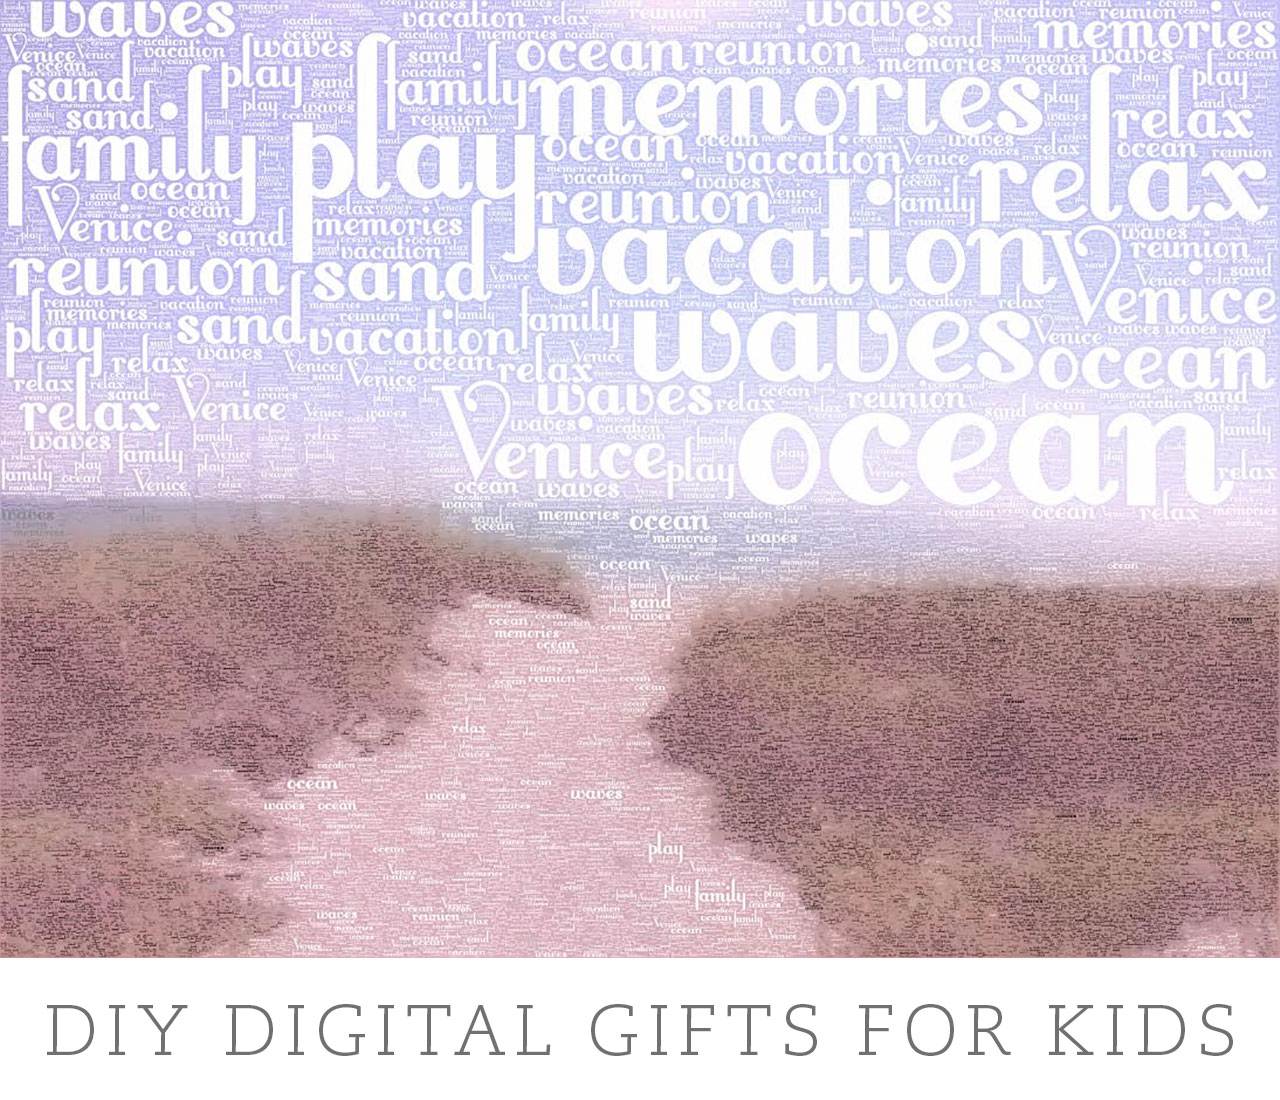 DIY Digital Gifts for Kids